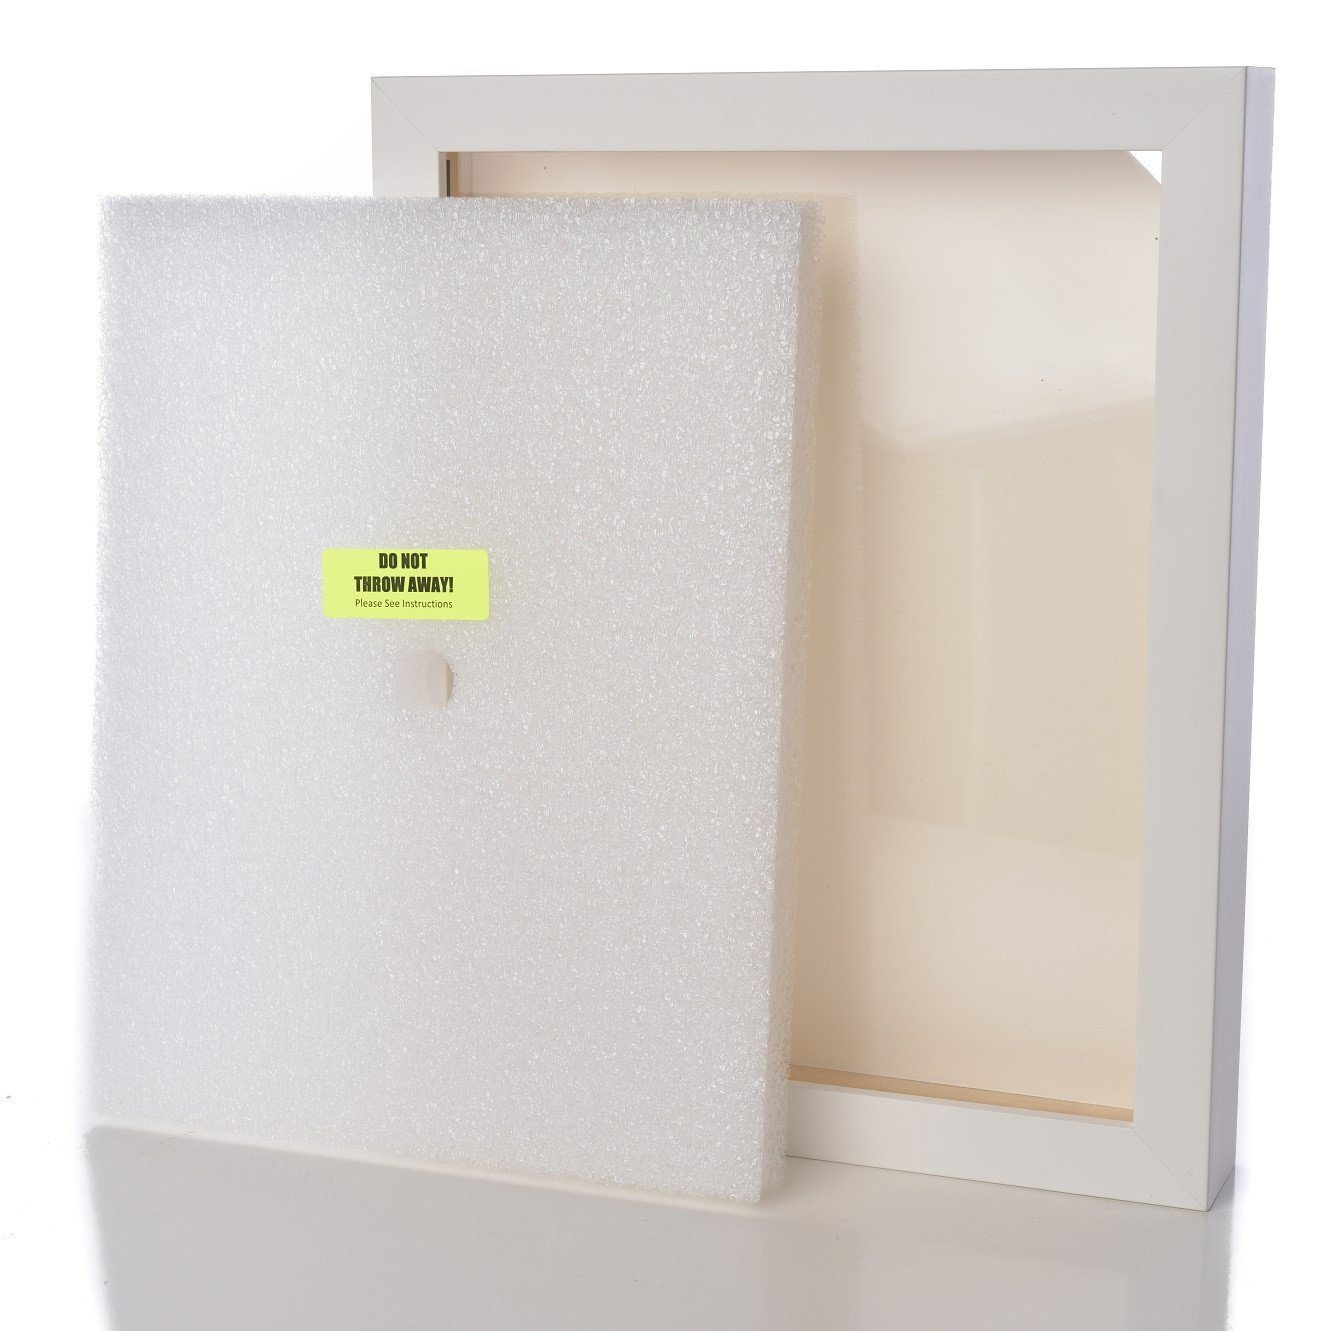 Shart Premium Square T Shirt Frame Display Case – White - Shart.com